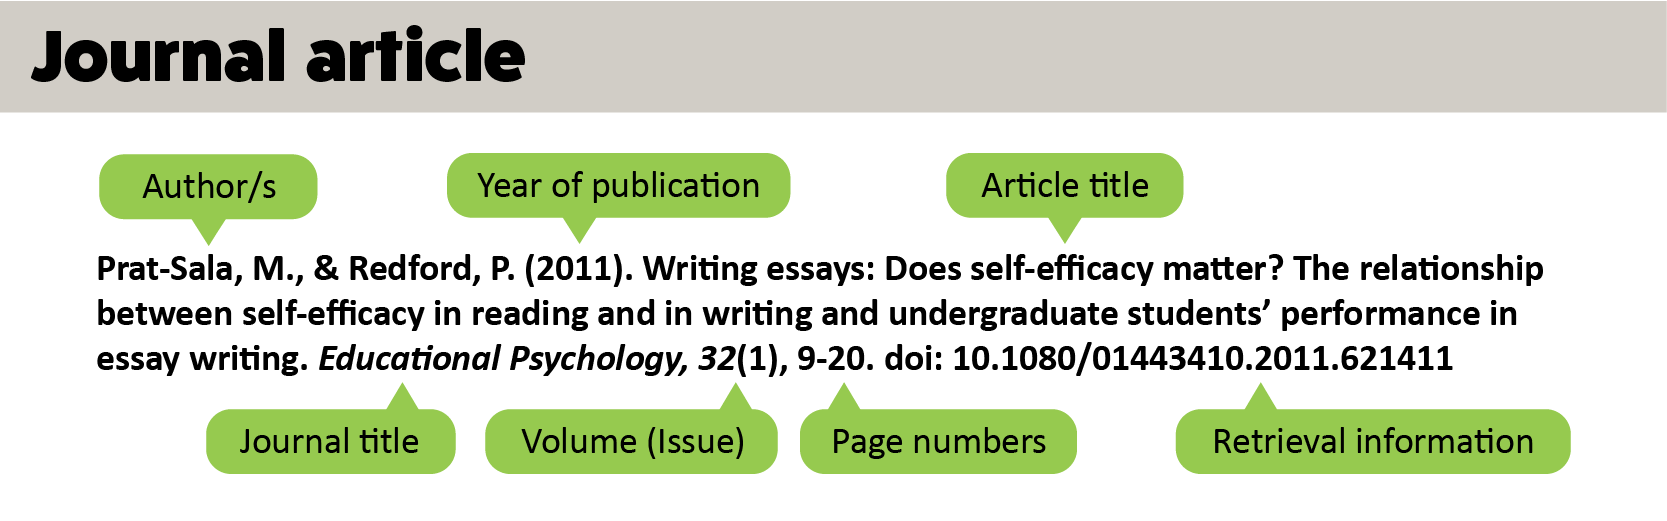 Journal article citations should have the following structure: Author/s. Year of publication in parentheses. Article title. Journal title in italics. Volume. Issue in parentheses. Page numbers. Retrieval information.